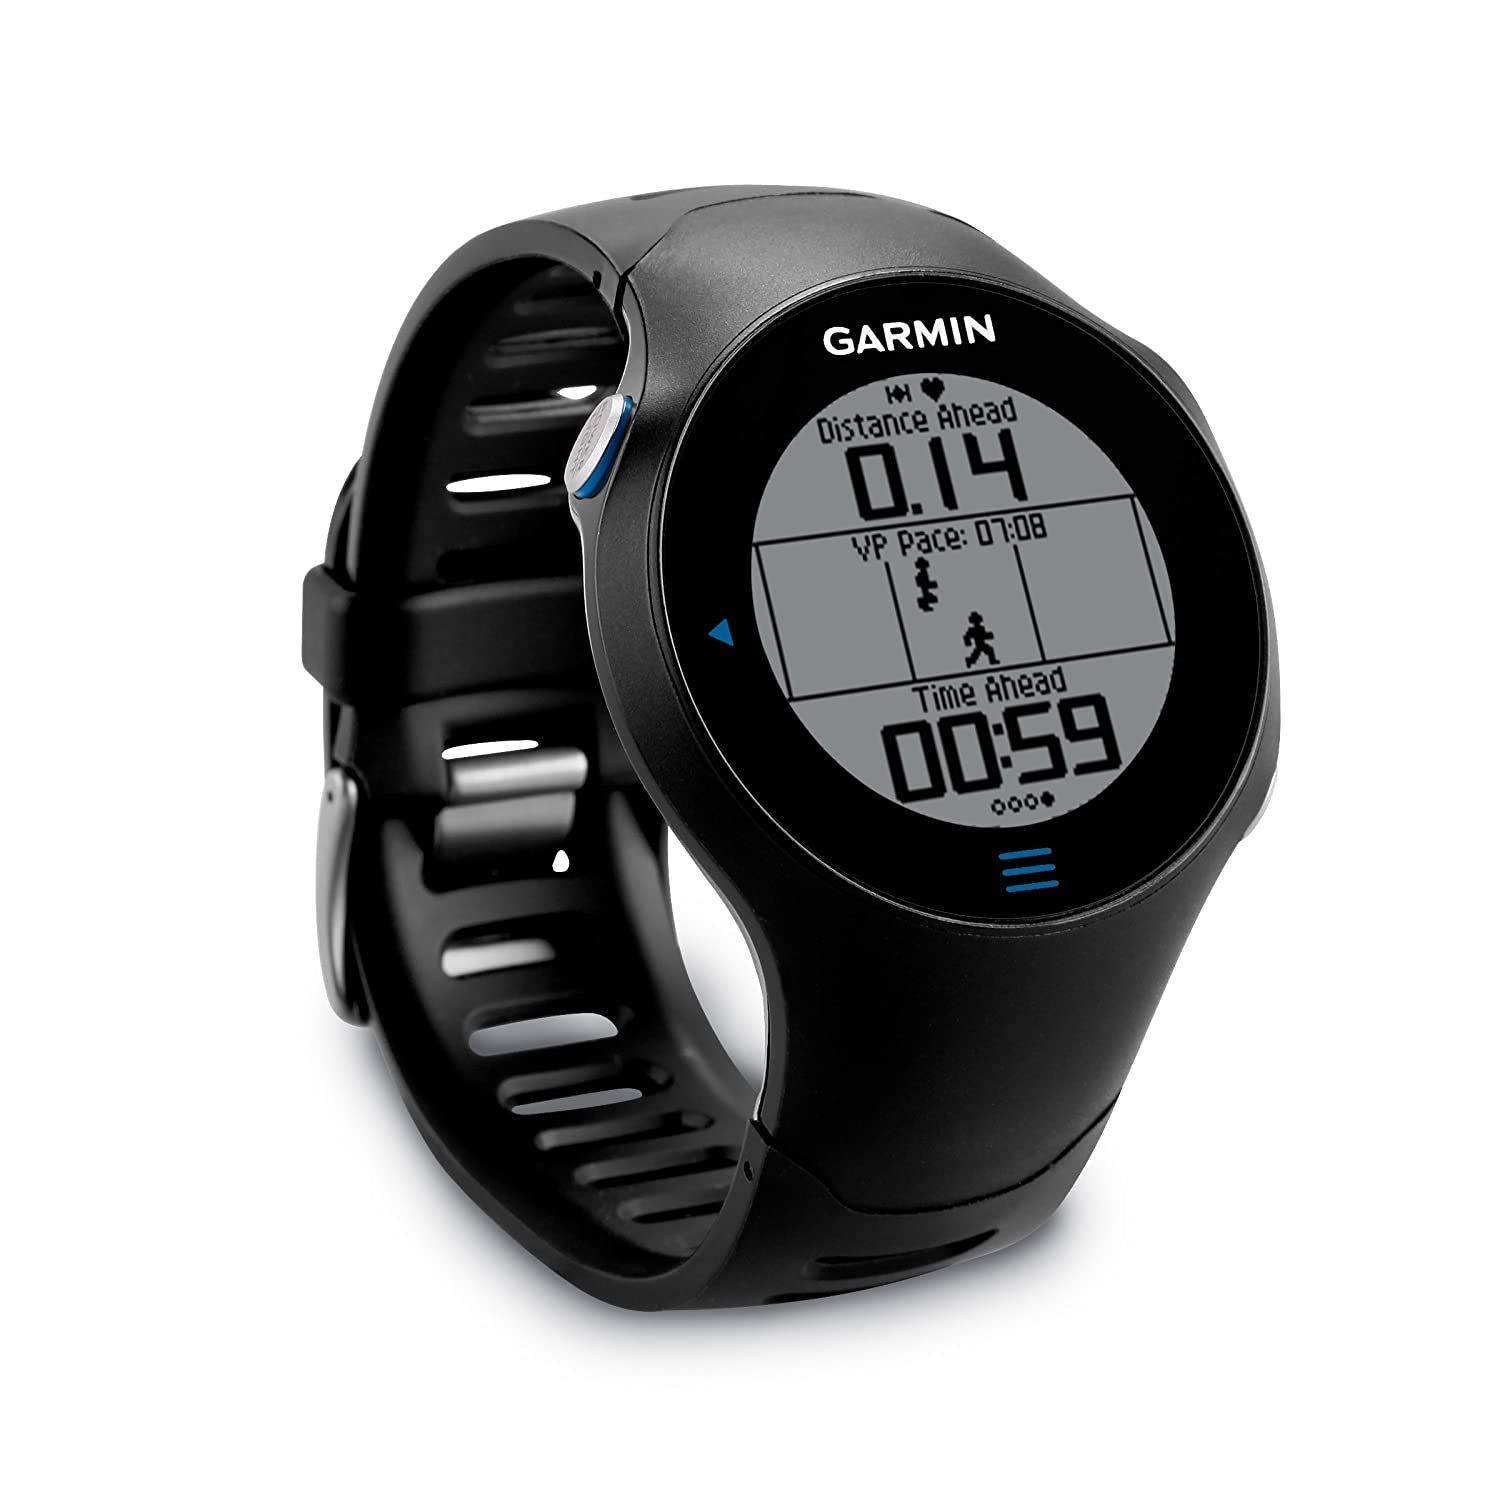 online en multisport picture watches buy garmin shop watch forerunner gps